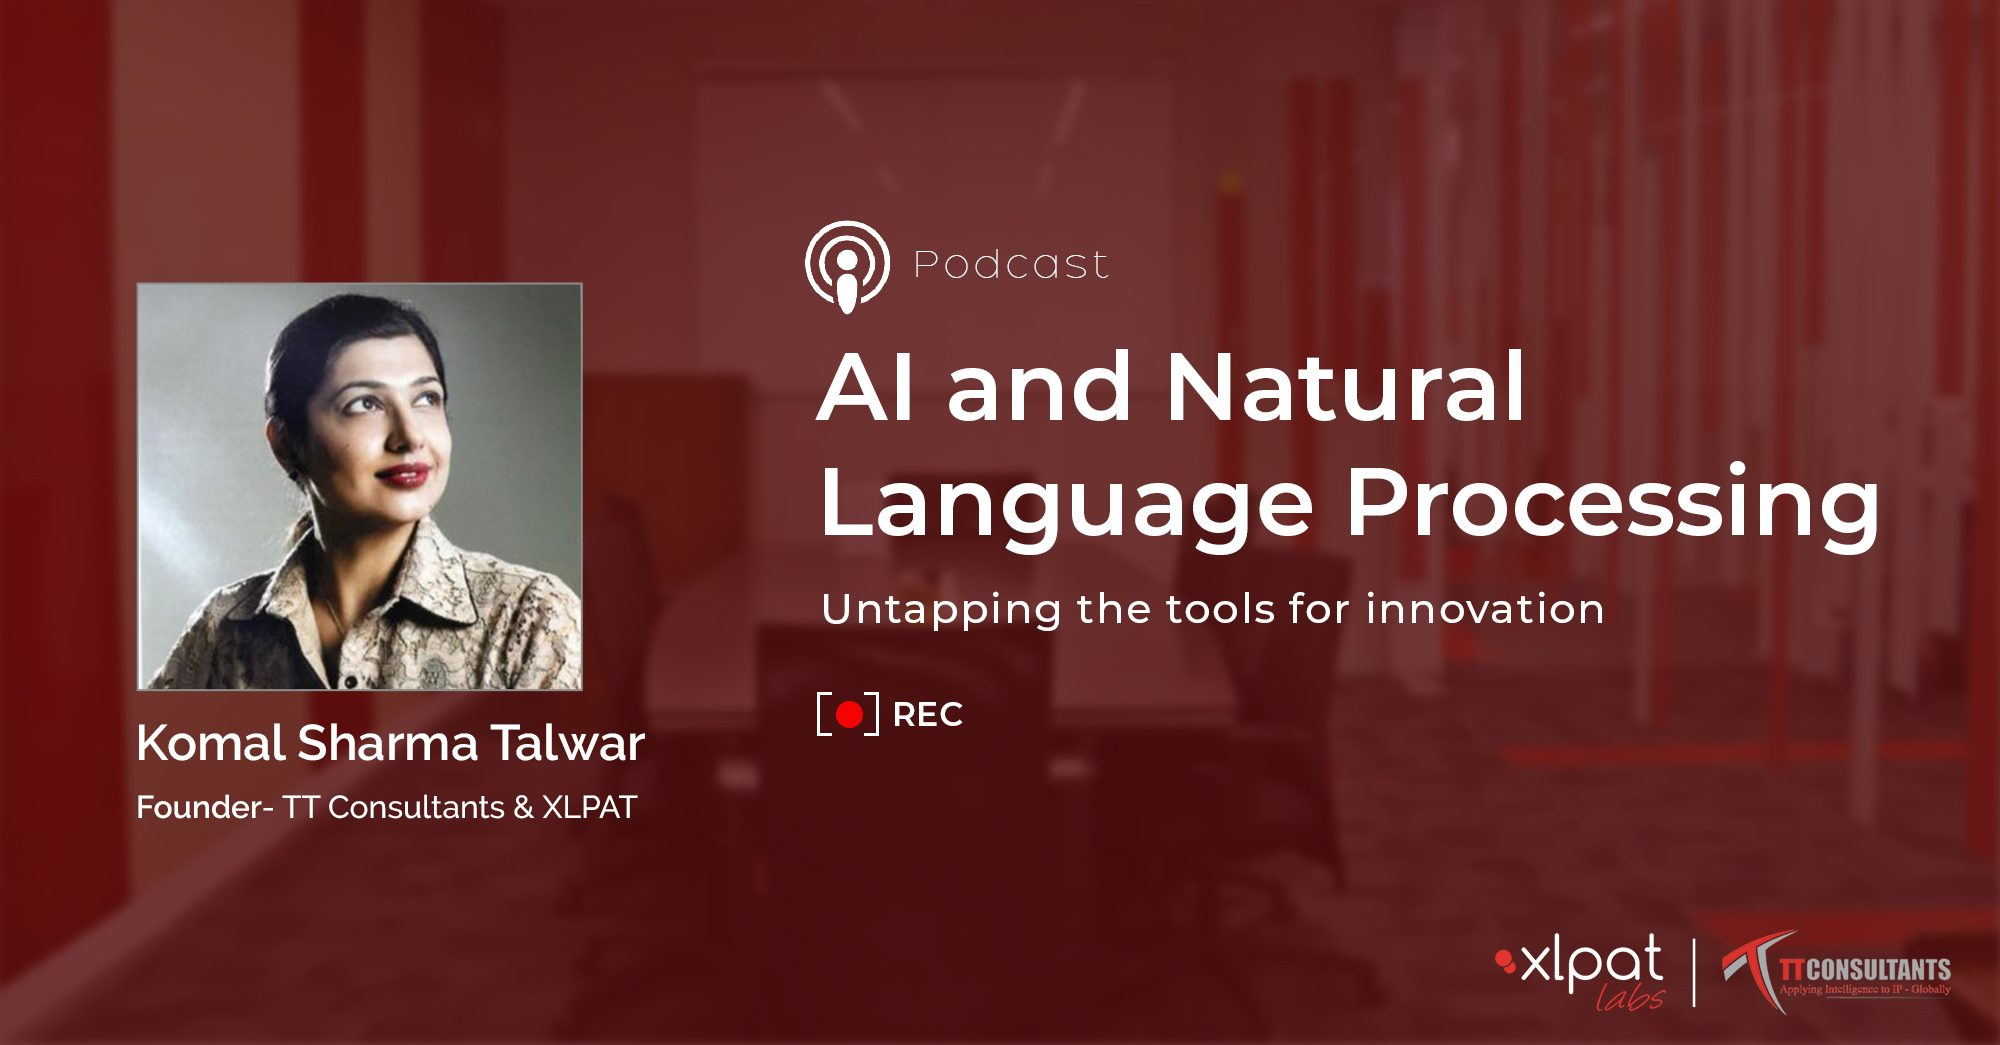 o PODCAST: AI AND NATURAL LANGUAGE PROCESSING